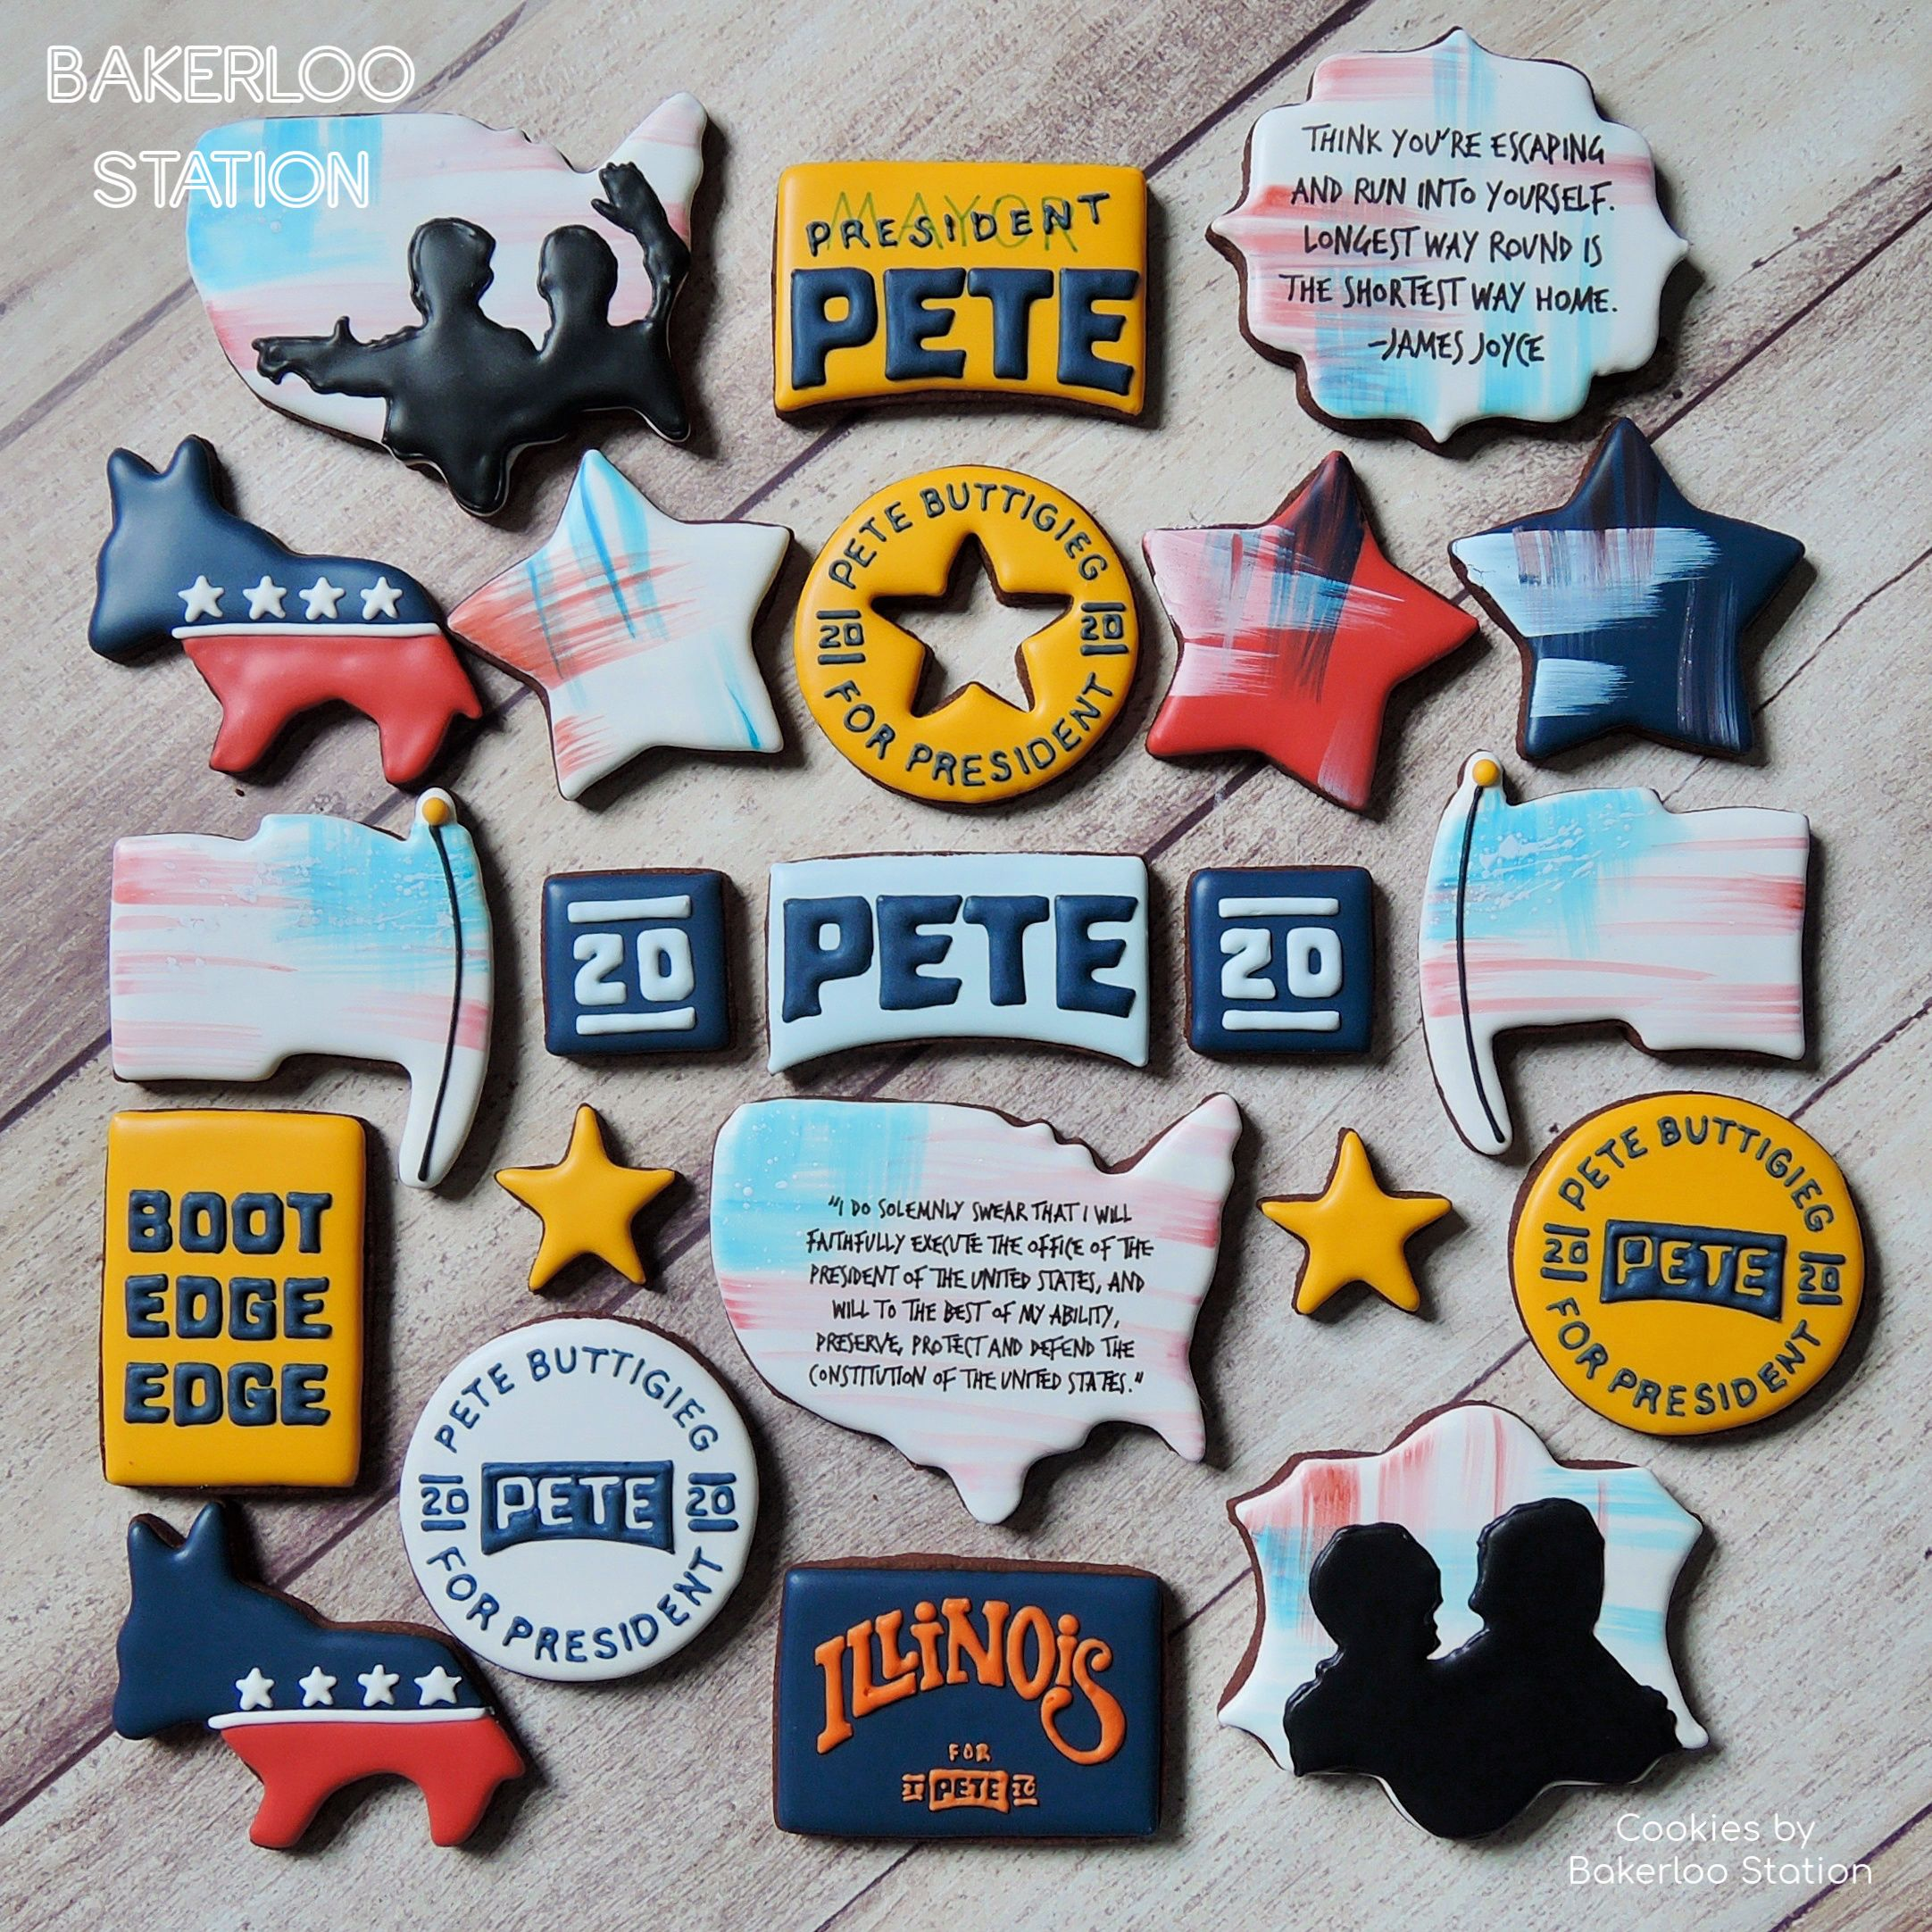 Cookies Made For And Given To 2020 Presidential Candidate Pete Buttigieg By Bakerloo Station Cookies Pete Aiga